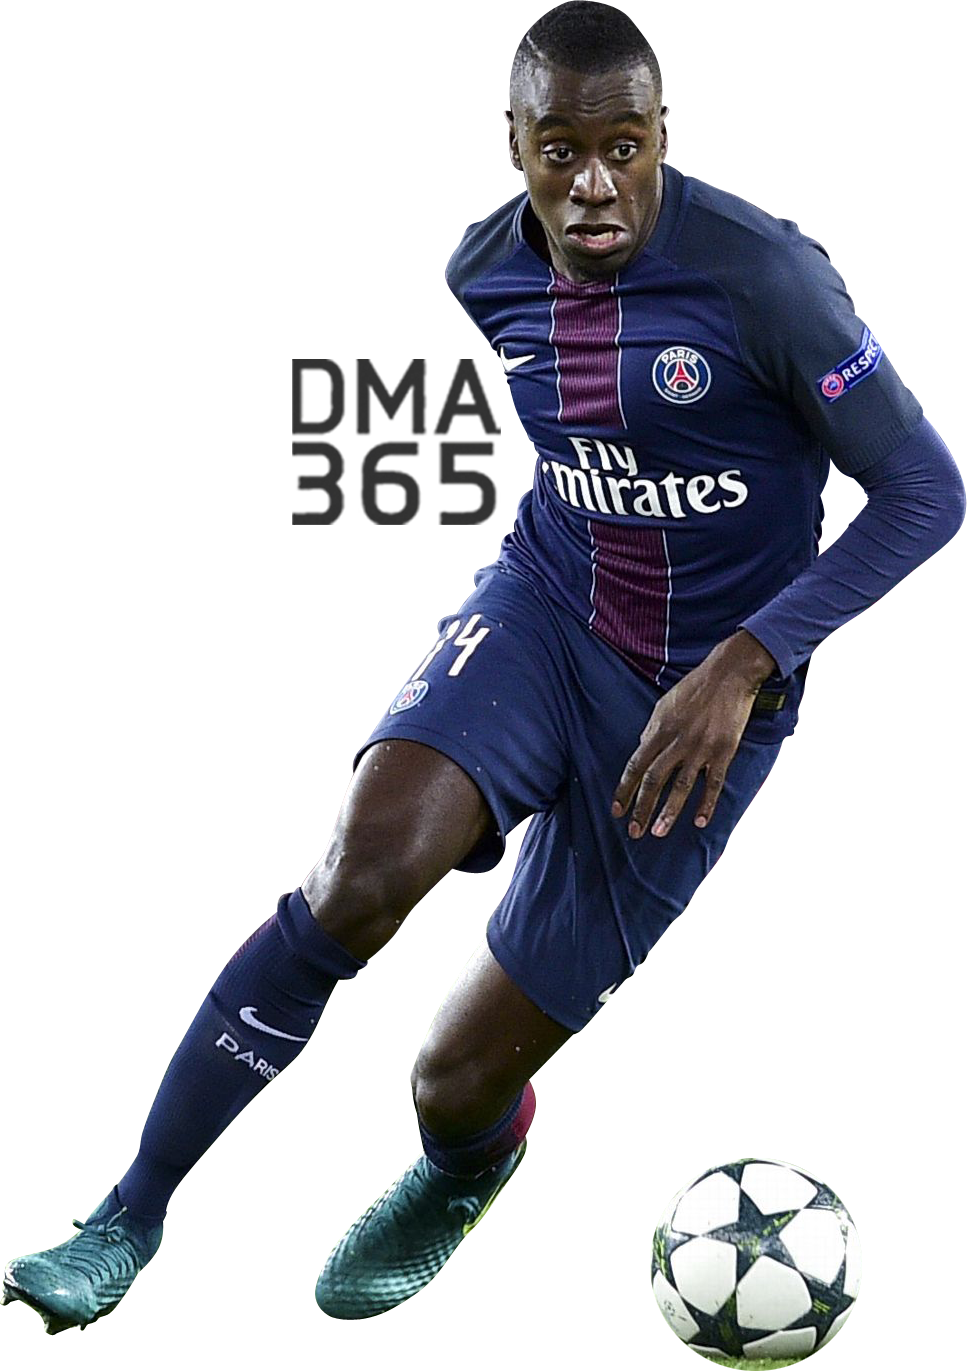 Blaise Matuidi by dma365 on DeviantArt